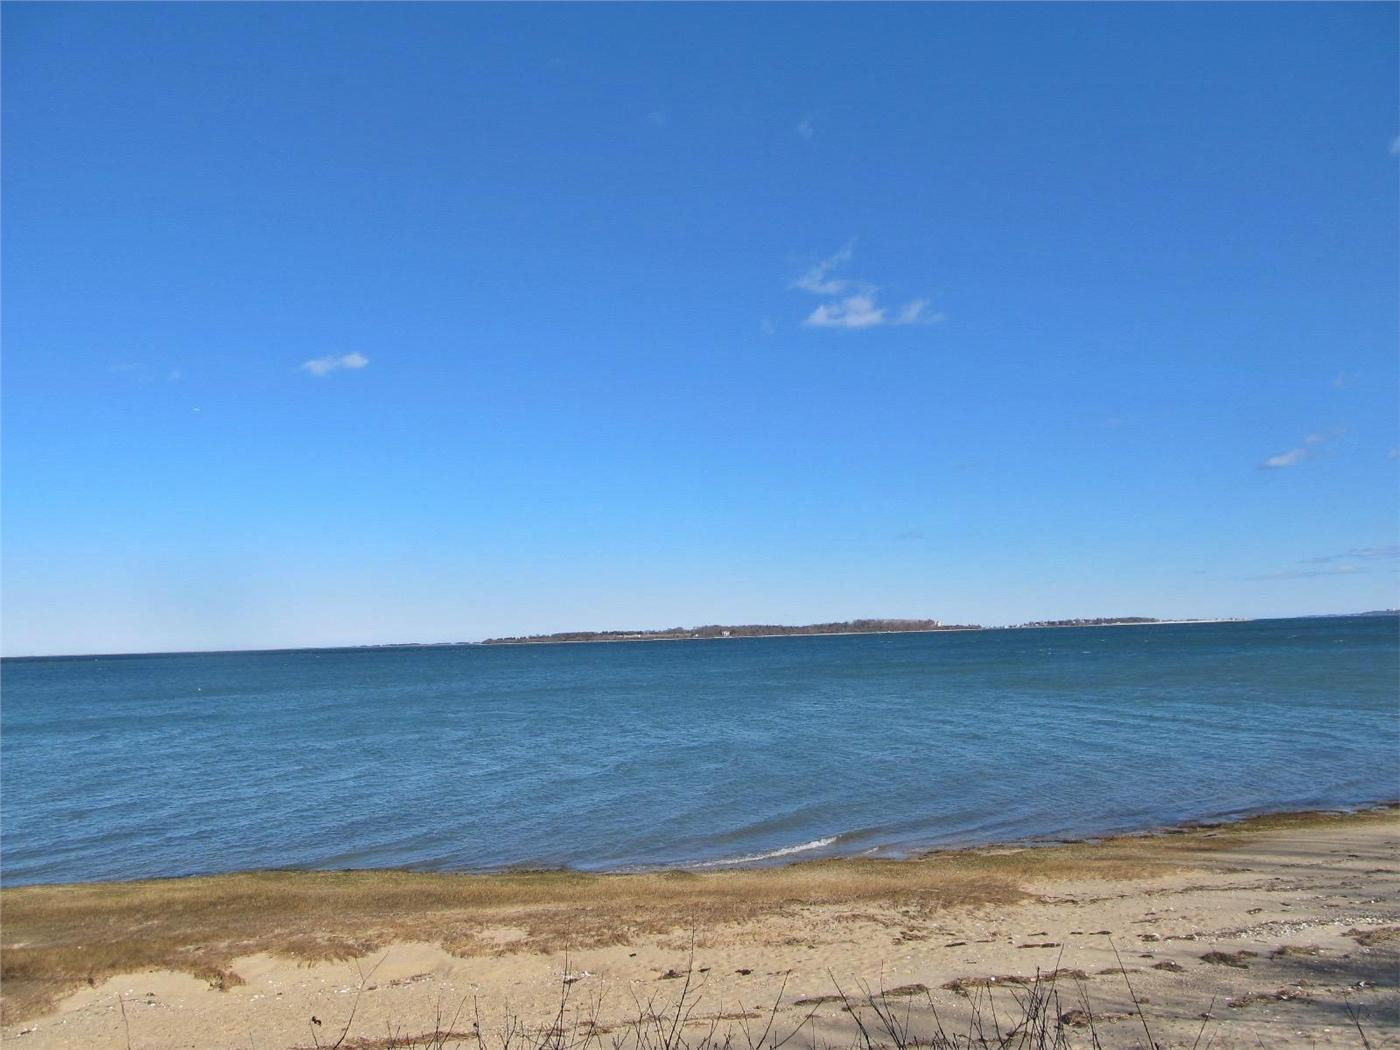 Duxbury Vacation Rental Home In Ma Ma 02332 Right On The Beach Id 26427